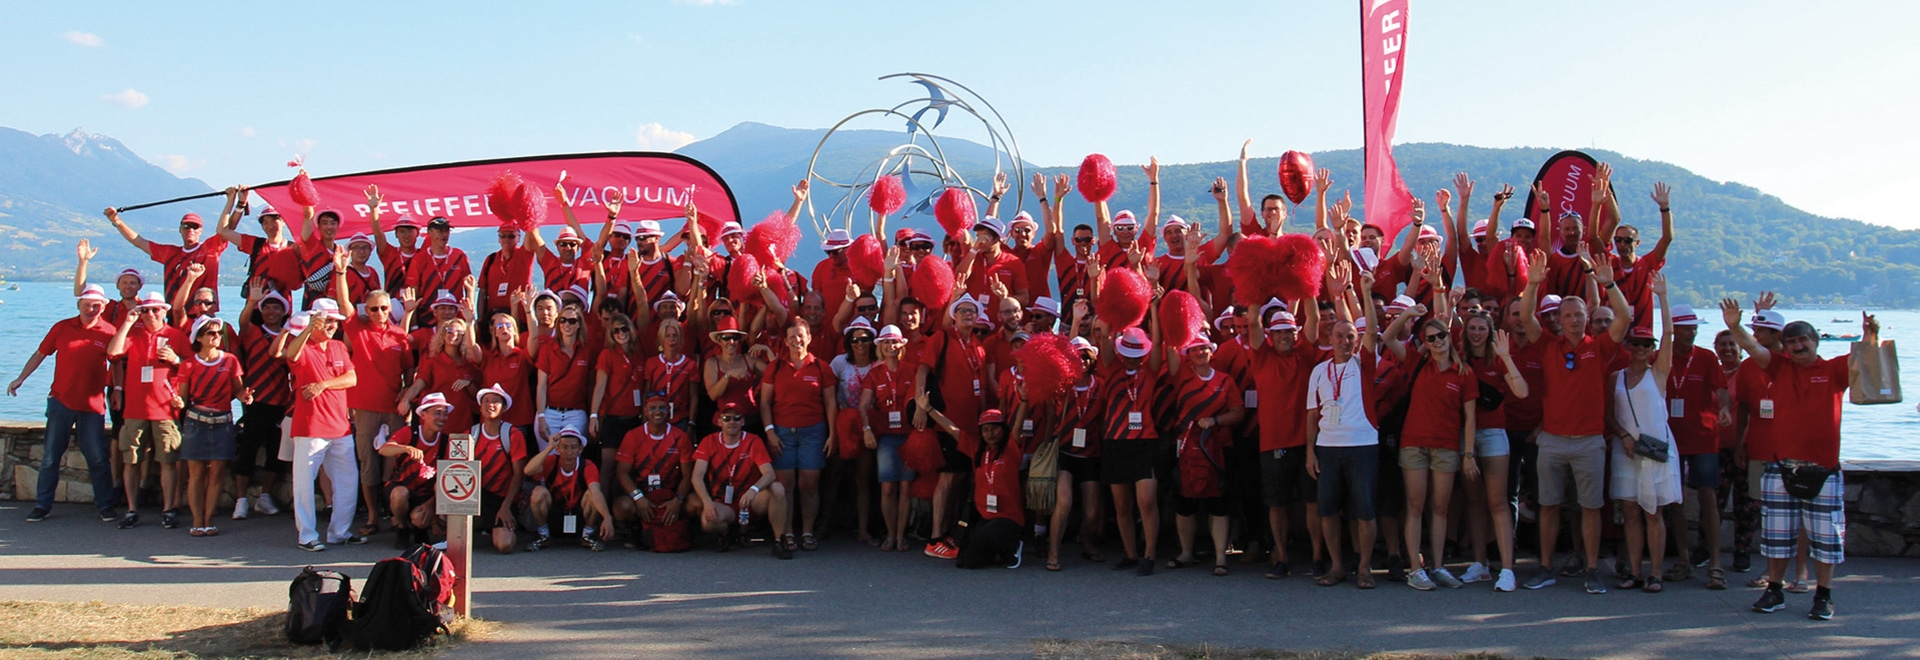 Pfeiffer Vacuum employees reached the second place in the overall ranking at the Corporate Games in Annecy